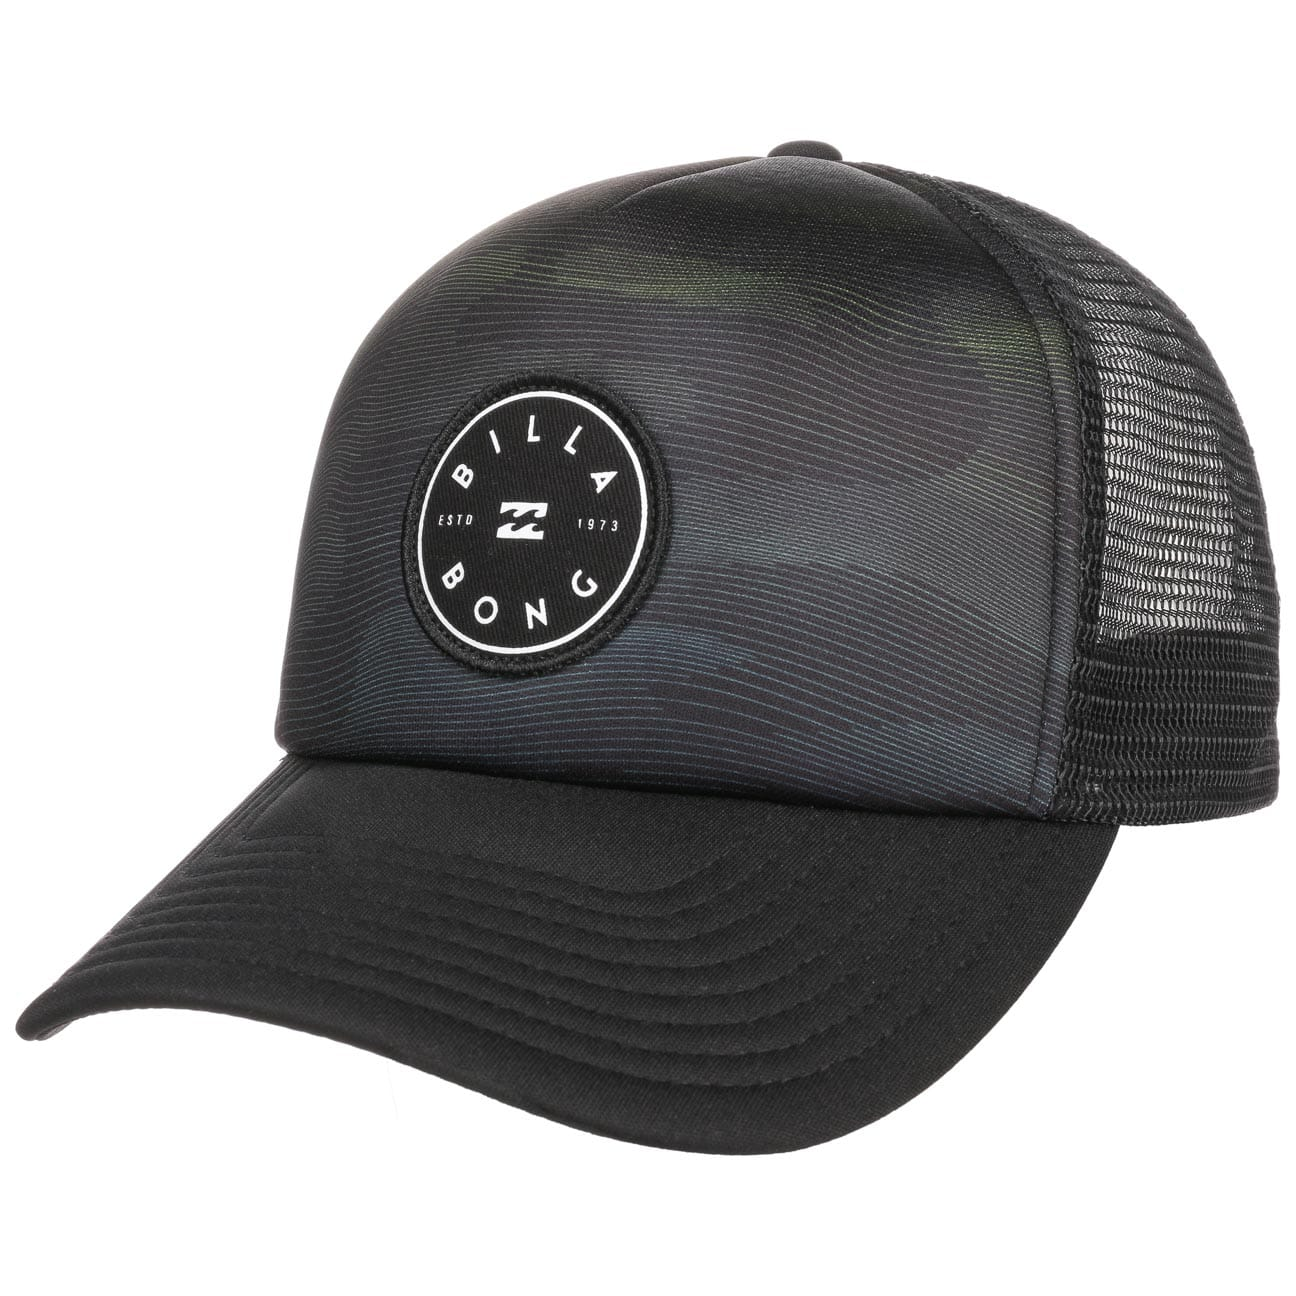 Casquette Trucker Scopey by Billabong  baseball cap